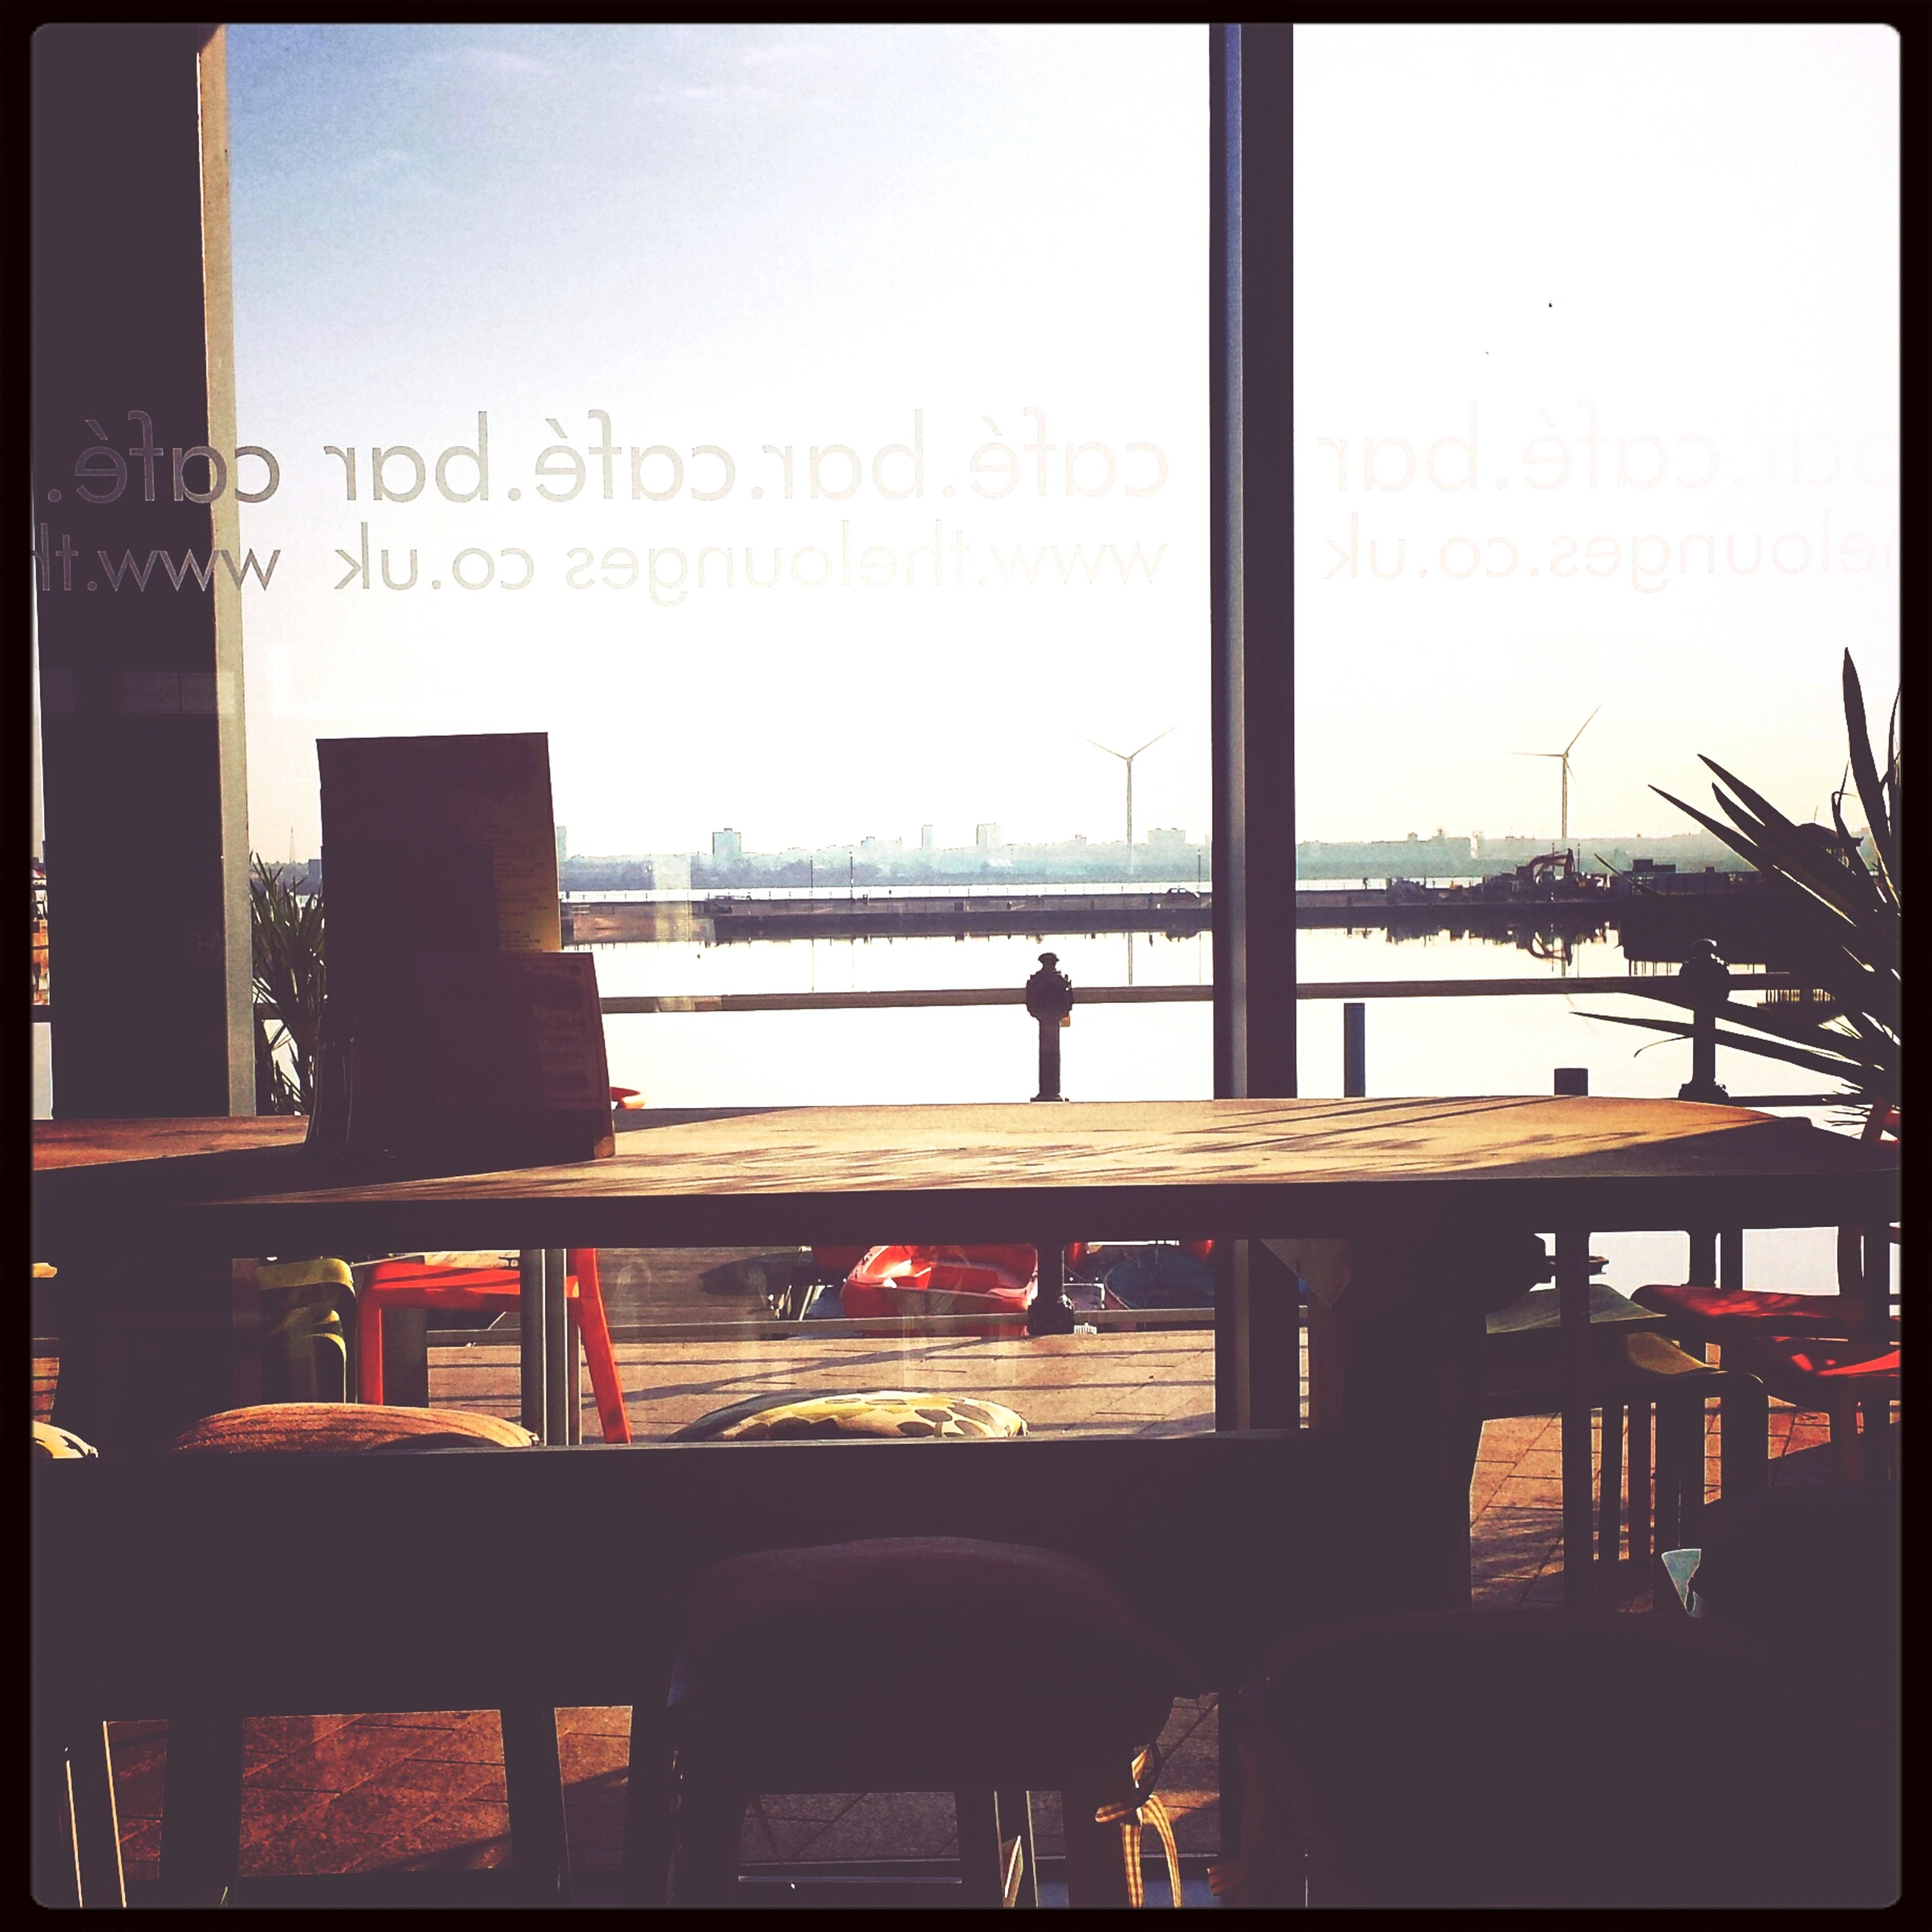 transfer print, auto post production filter, indoors, built structure, chair, architecture, clear sky, men, restaurant, silhouette, window, table, text, copy space, sky, communication, glass - material, sitting, railing